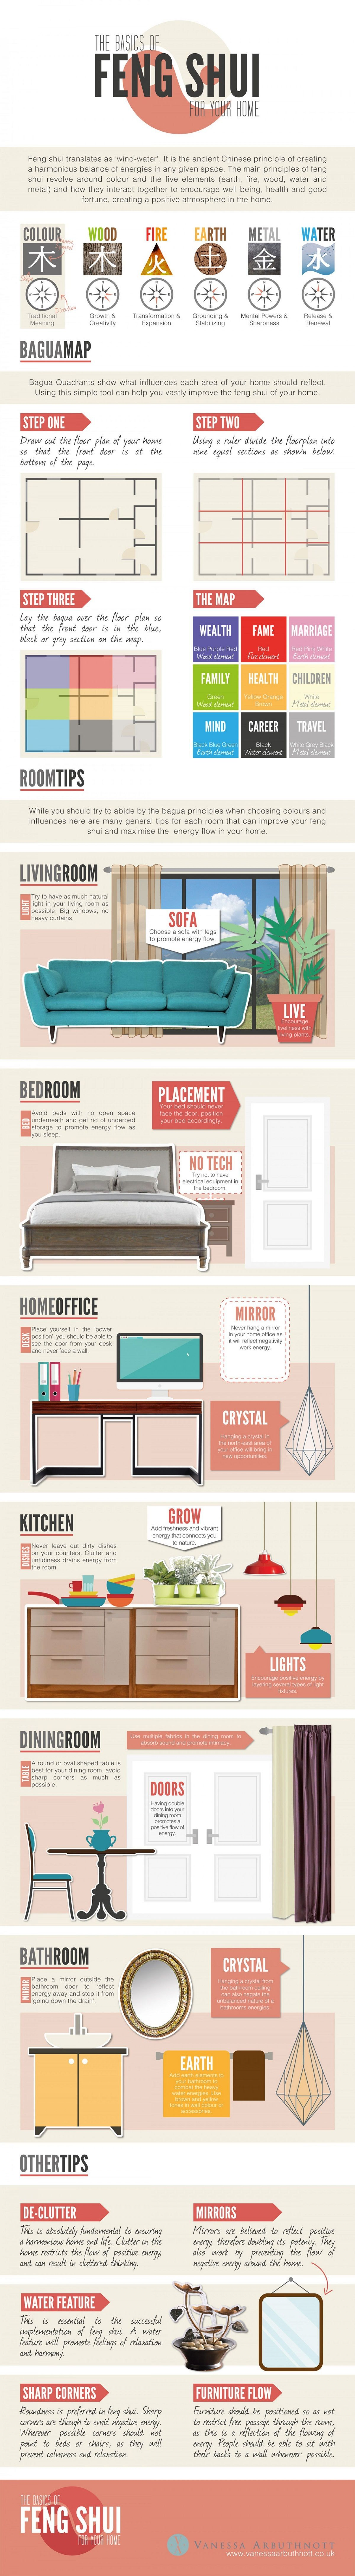 The Basics of Feng Shui For Your Home Infographic HomeImprovement